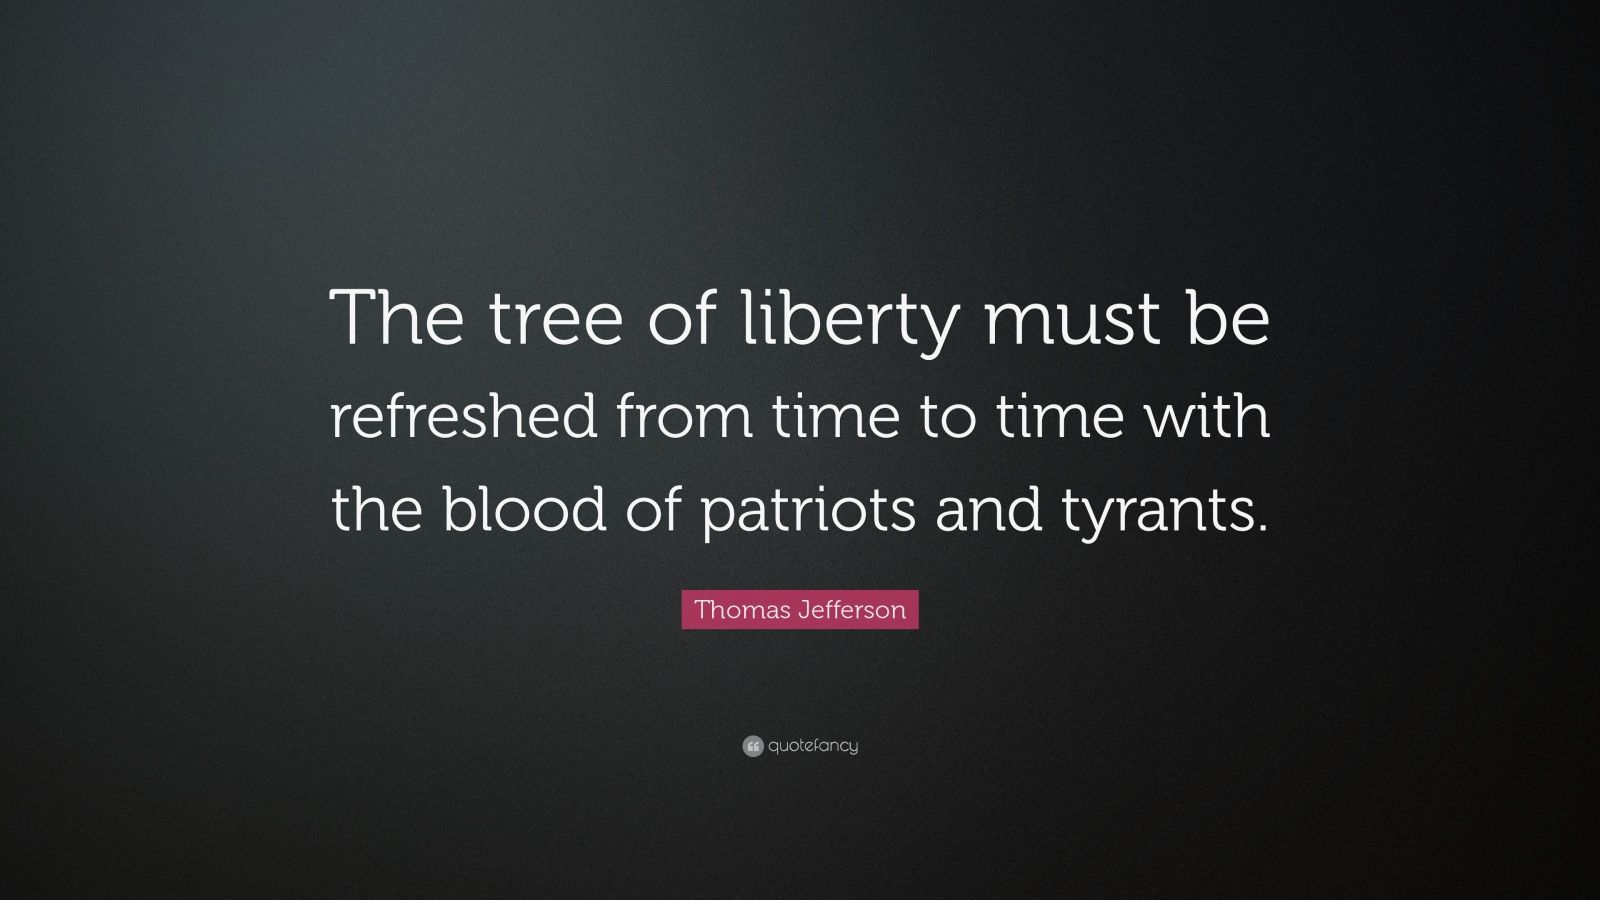 framers ideals and legislation in the tree of liberty In what ways are immigrants central to american ideals and in what  she wrote this poem in 1883 to help raise money for a pedestal for the statue of liberty on.